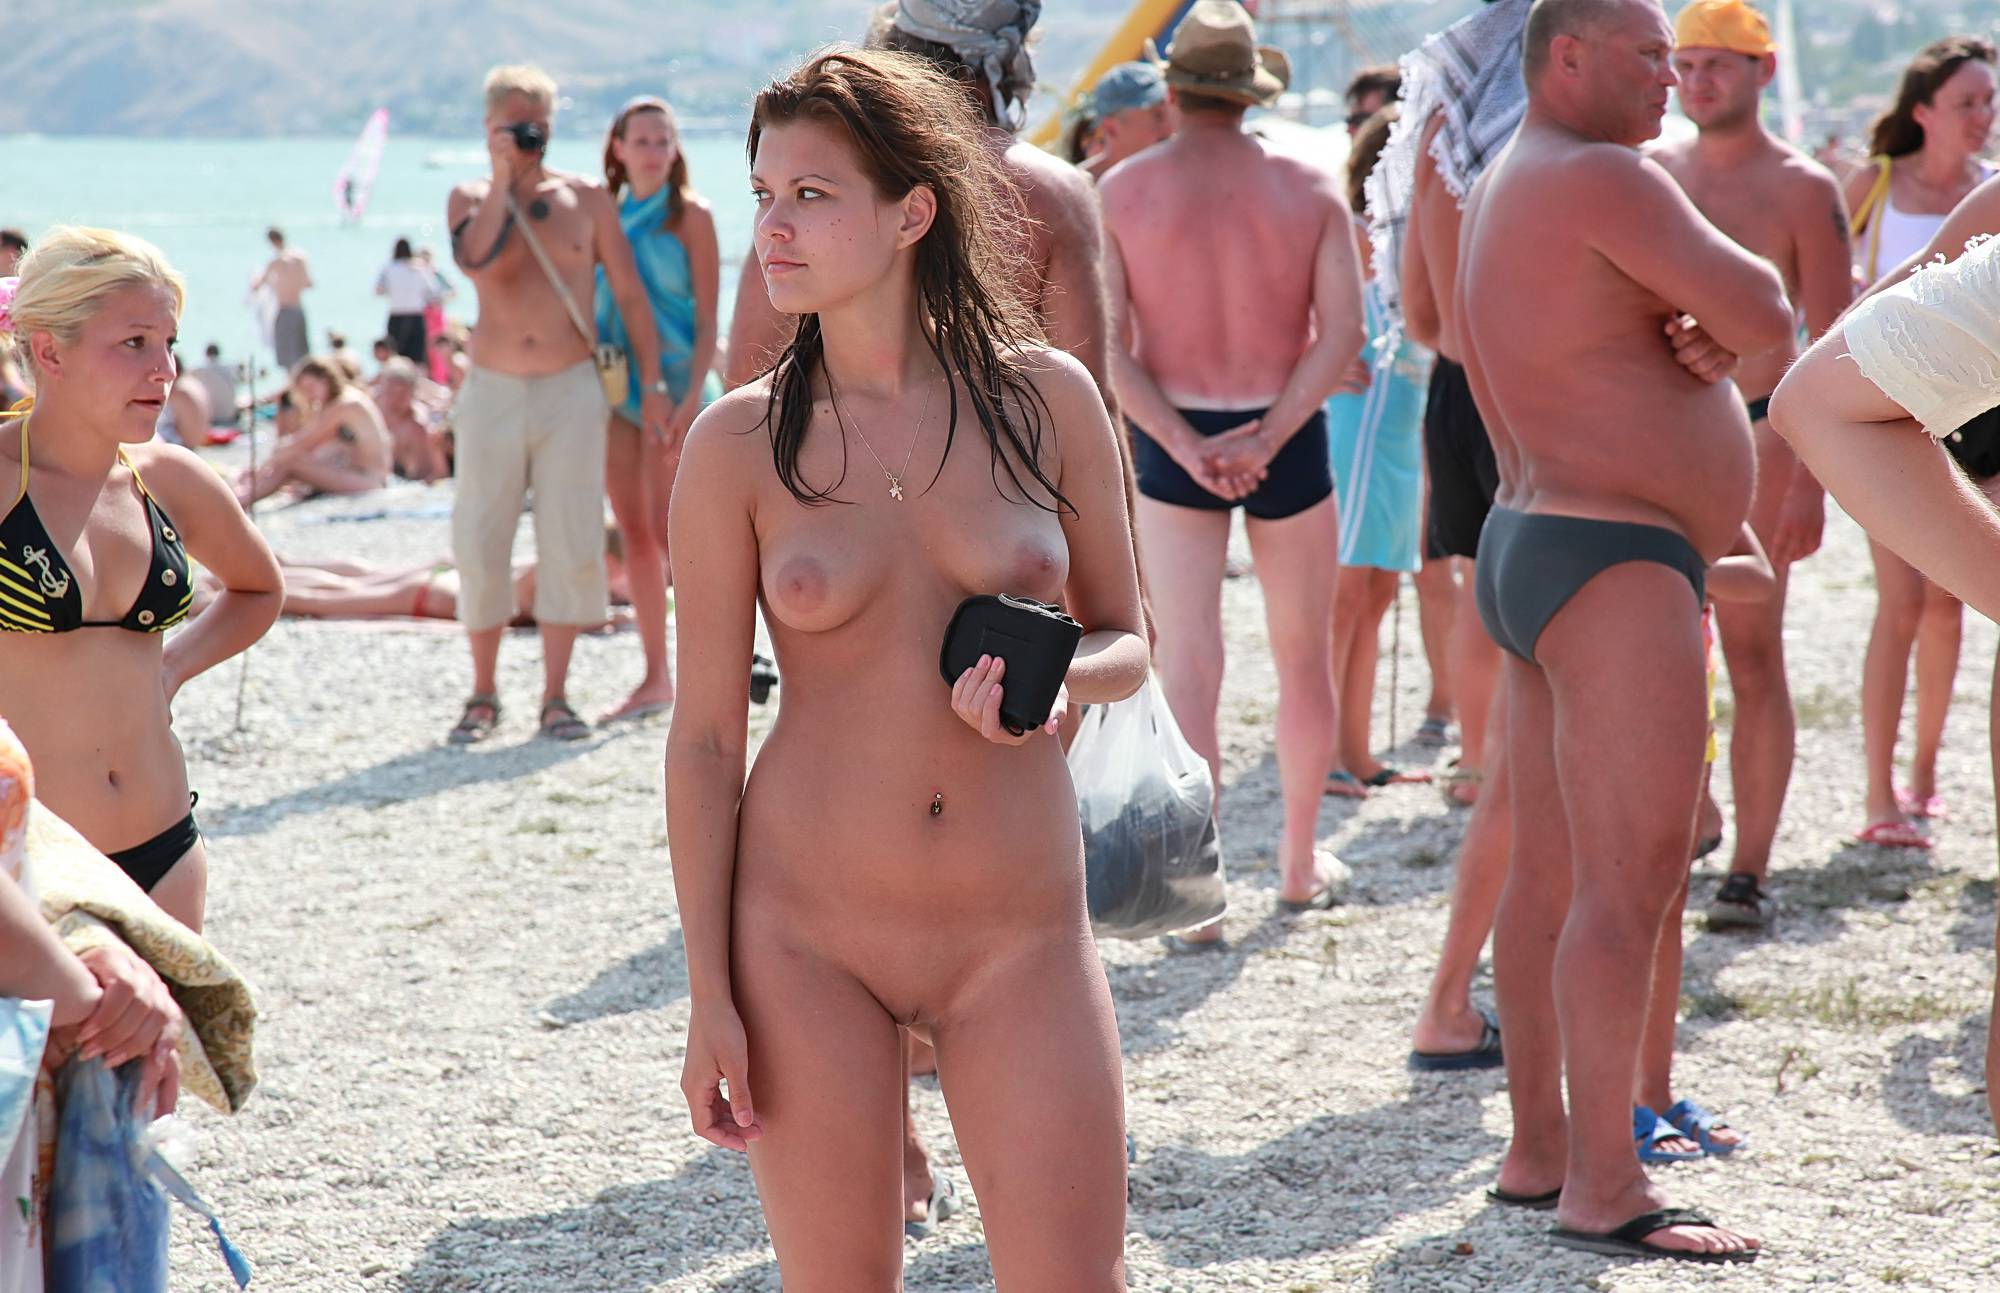 Sun-Lit Beach Naturists - 1